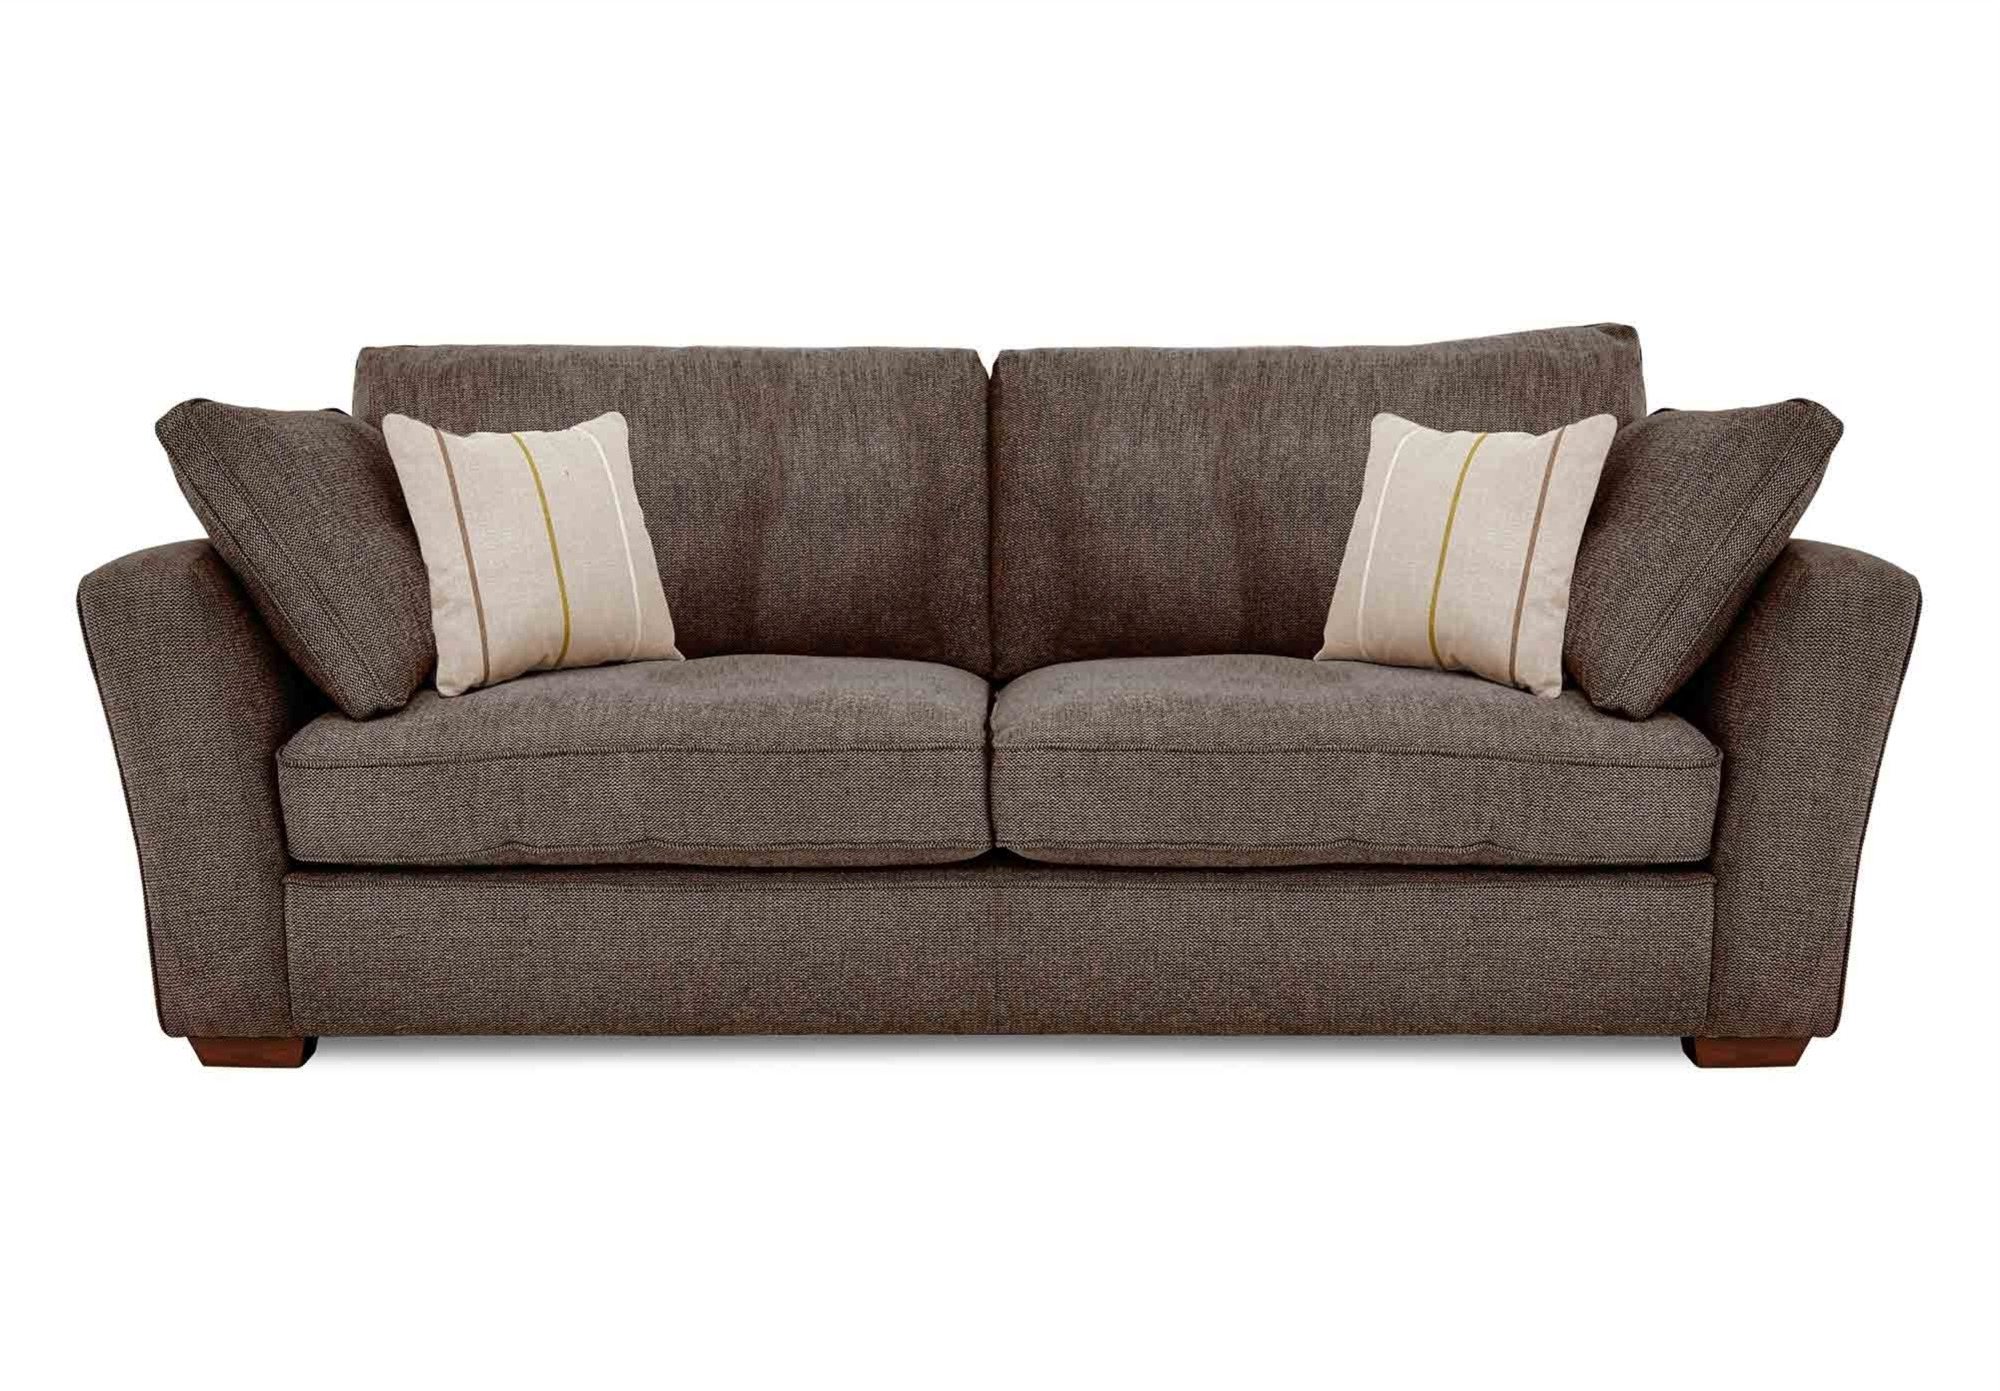 Large 4 Seater Sofas Intended For 2018 4 Seater Sofa – Otto – Gorgeous Living Room Furniture From (View 5 of 20)